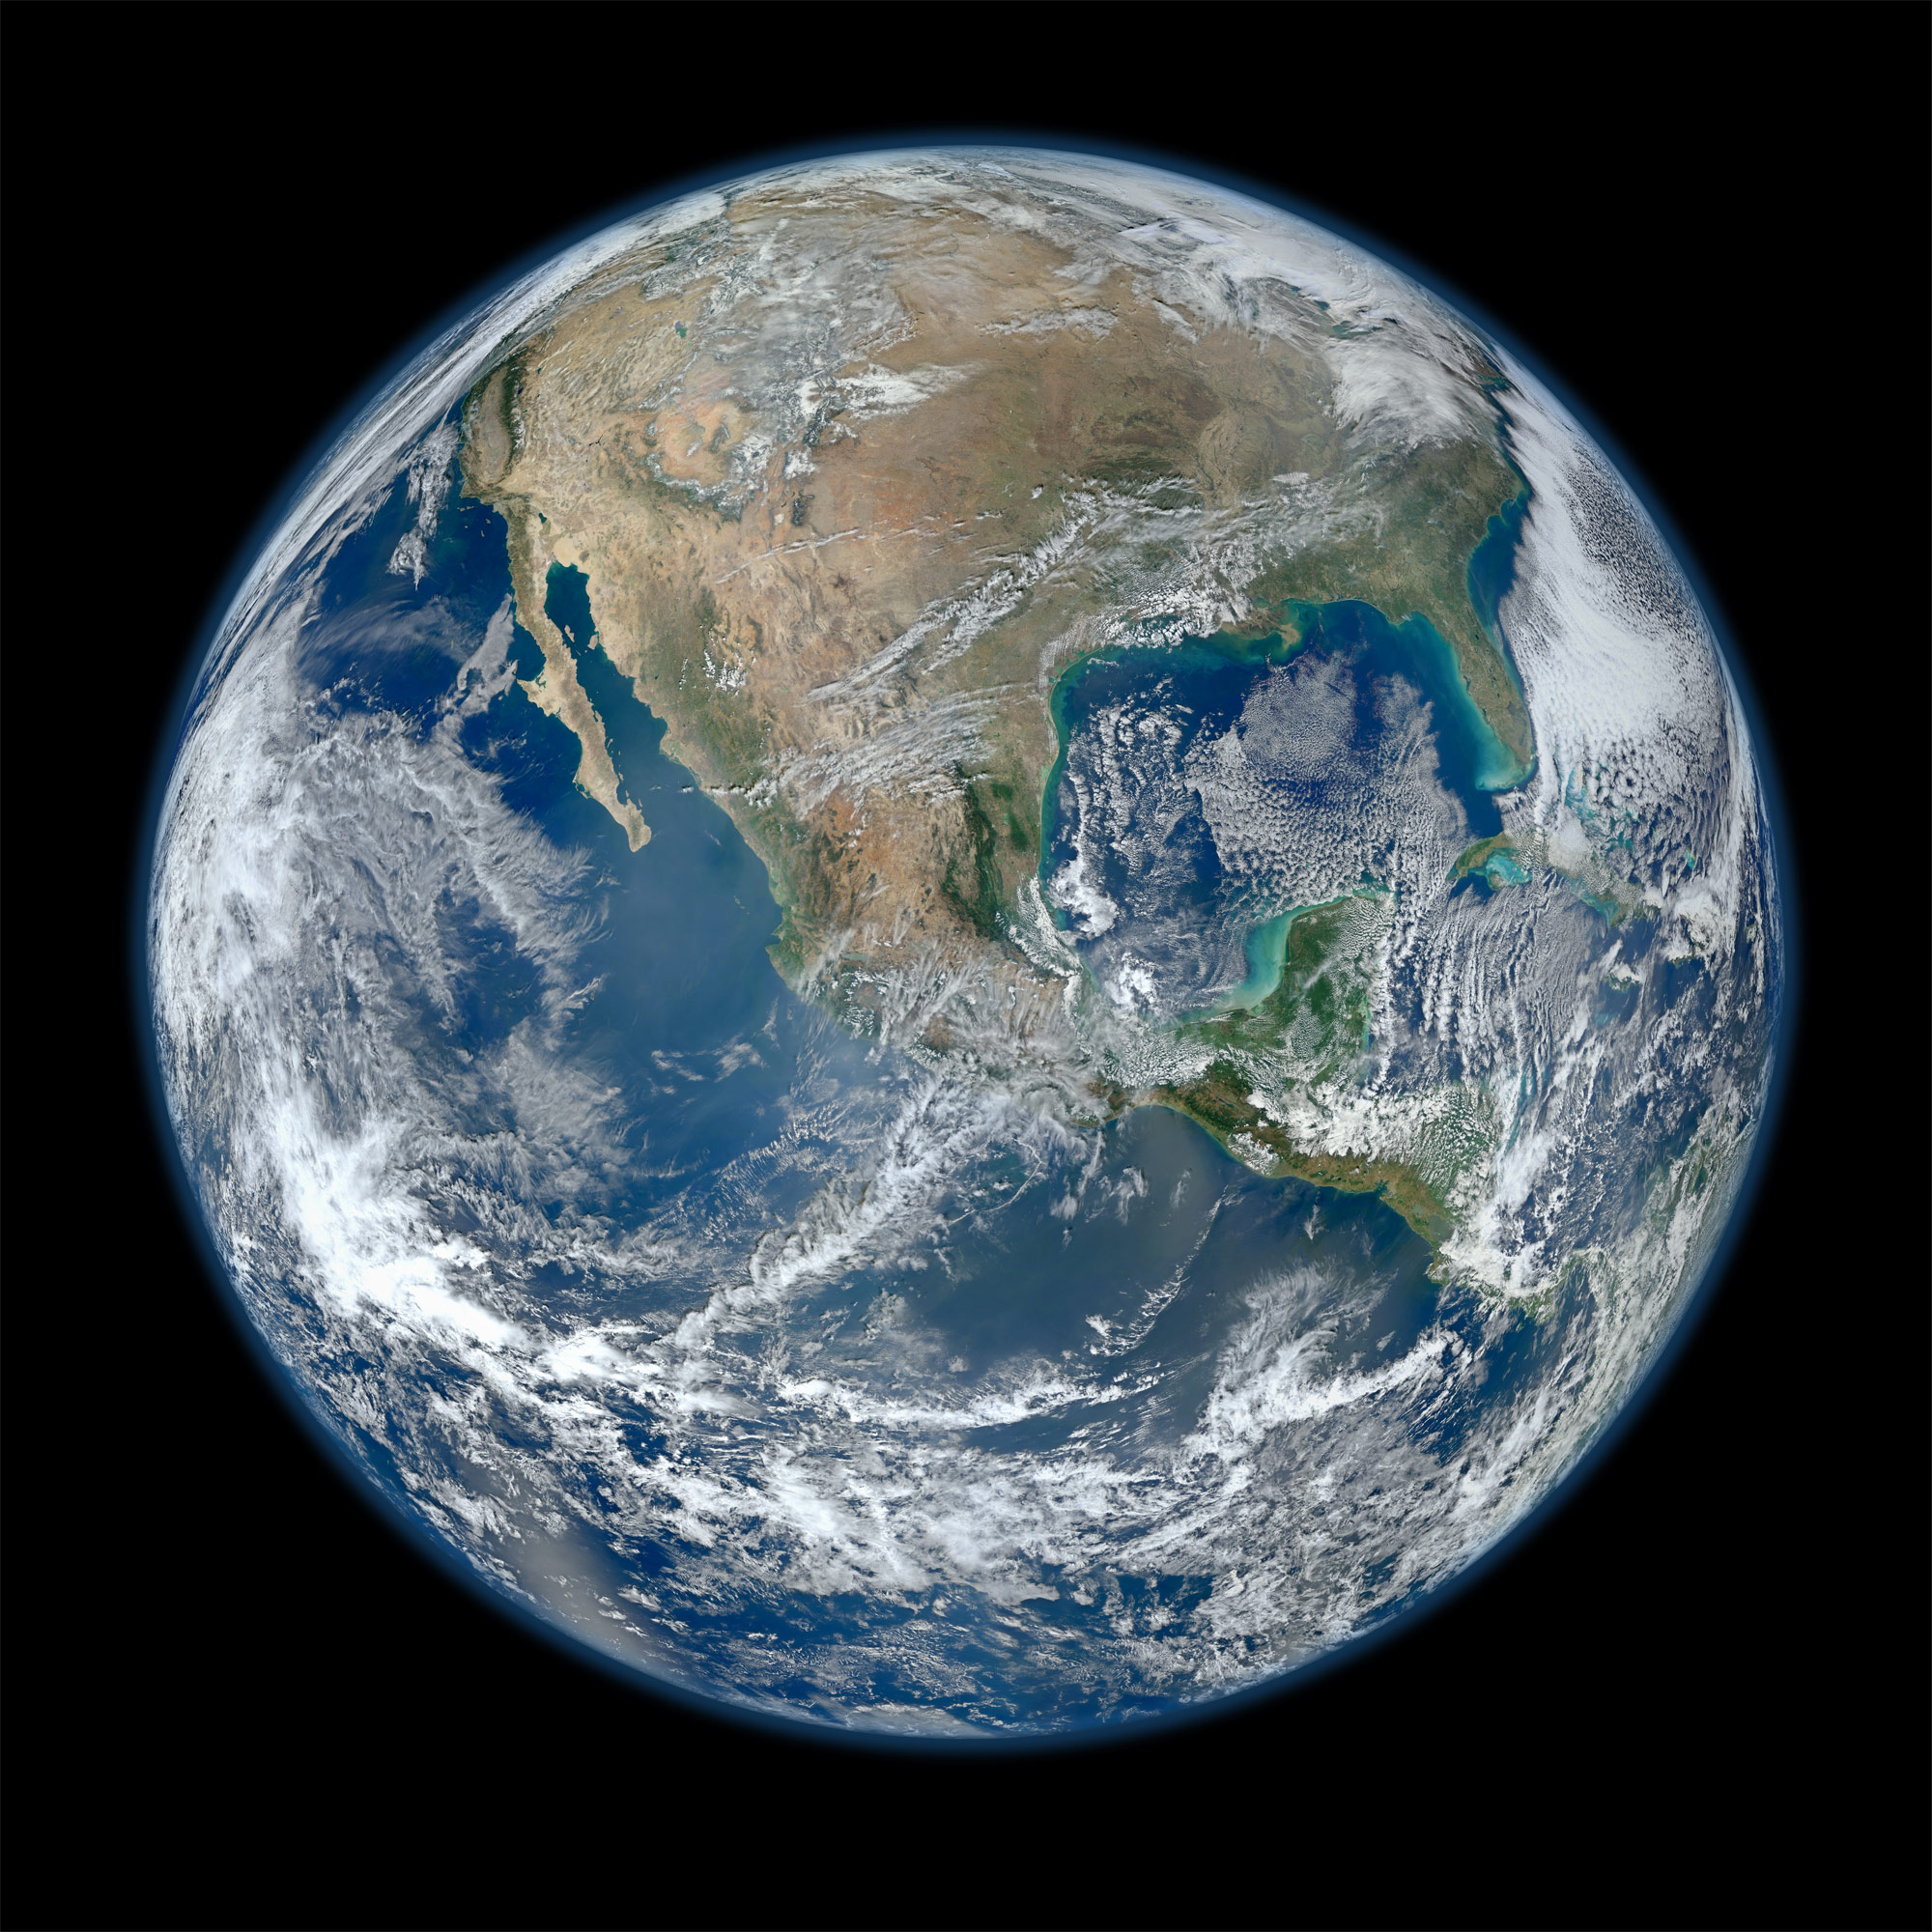 Alle Größen | Most Amazing High Definition Image of Earth - Blue Marble 2012 | Flickr - Fotosharing!